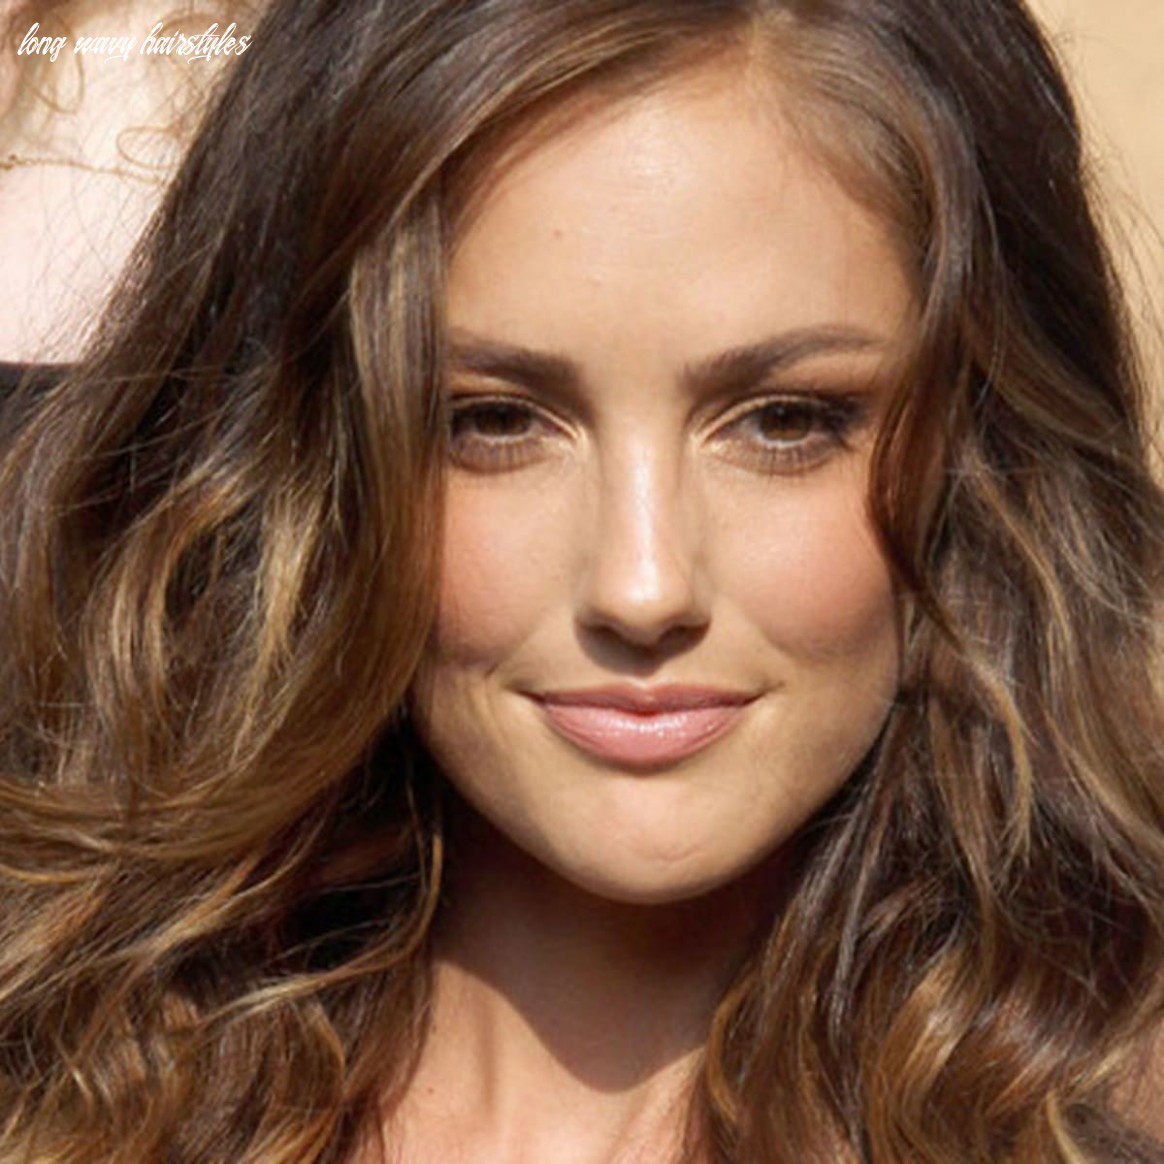 Wavy hairstyles: best cuts and styles for long, naturally wavy